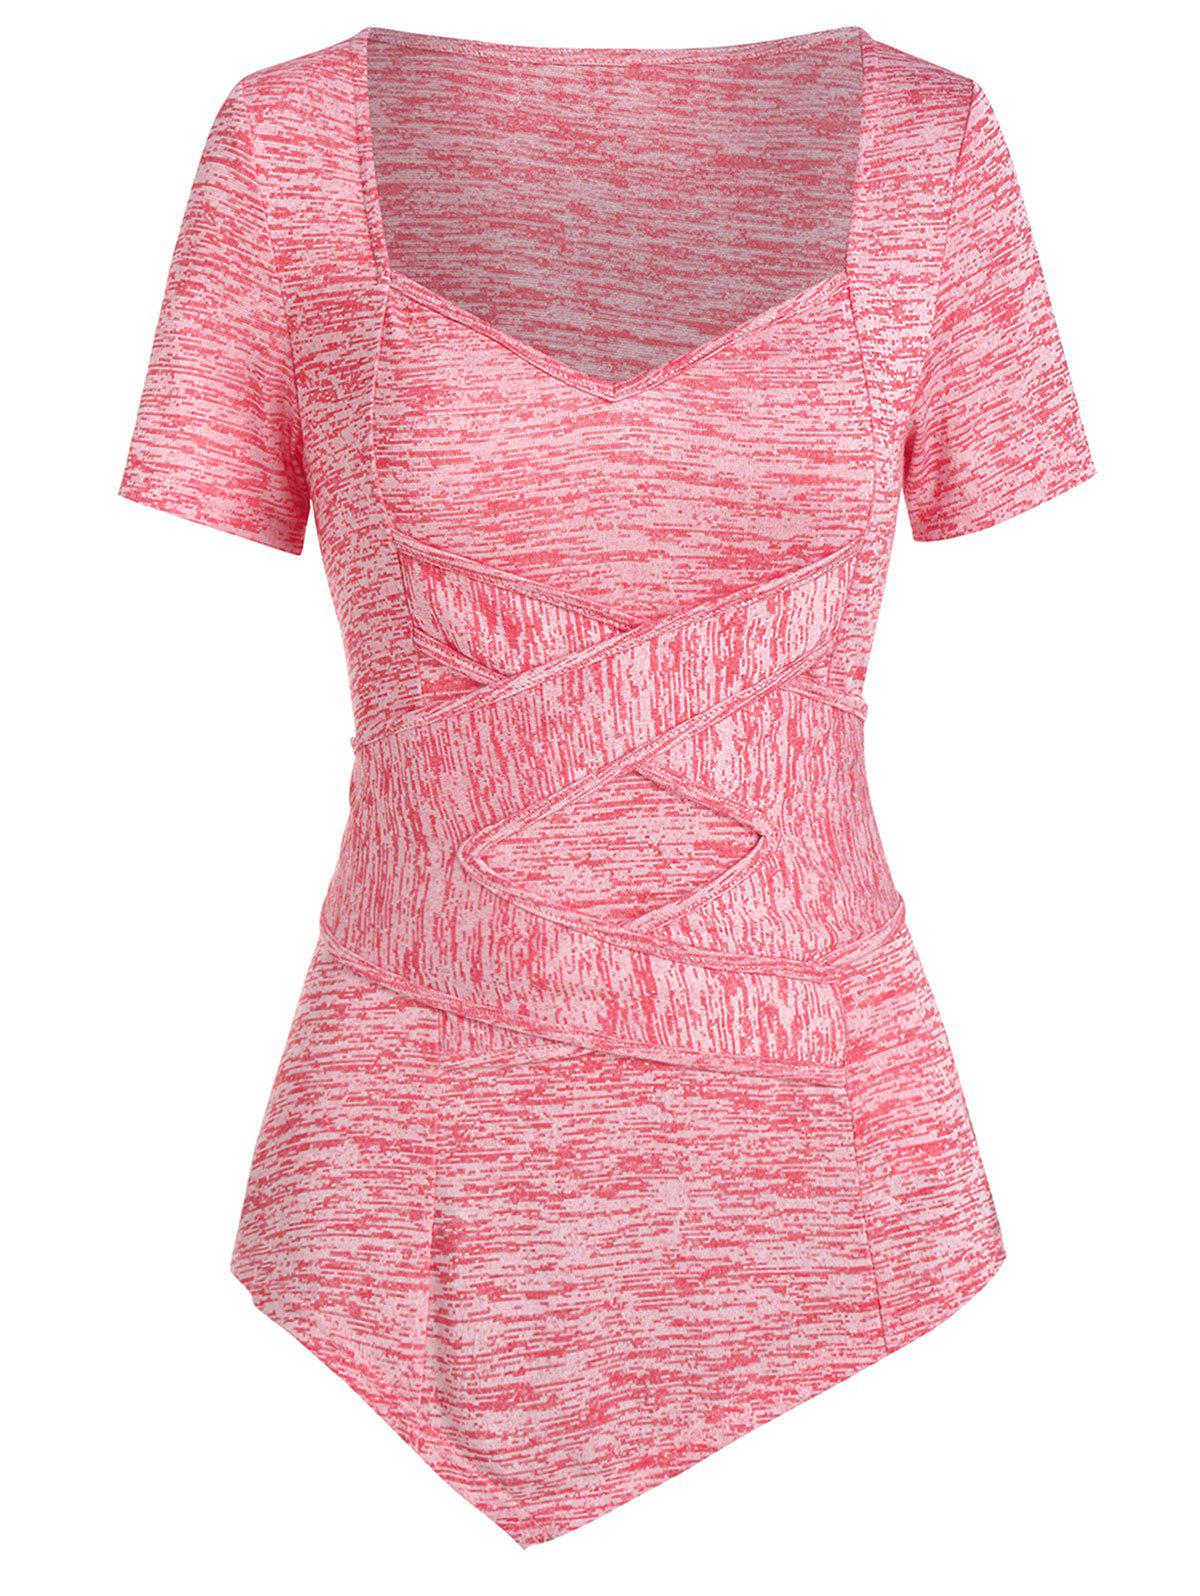 Crossover Space Dye Asymmetric T Shirt - VALENTINE RED M